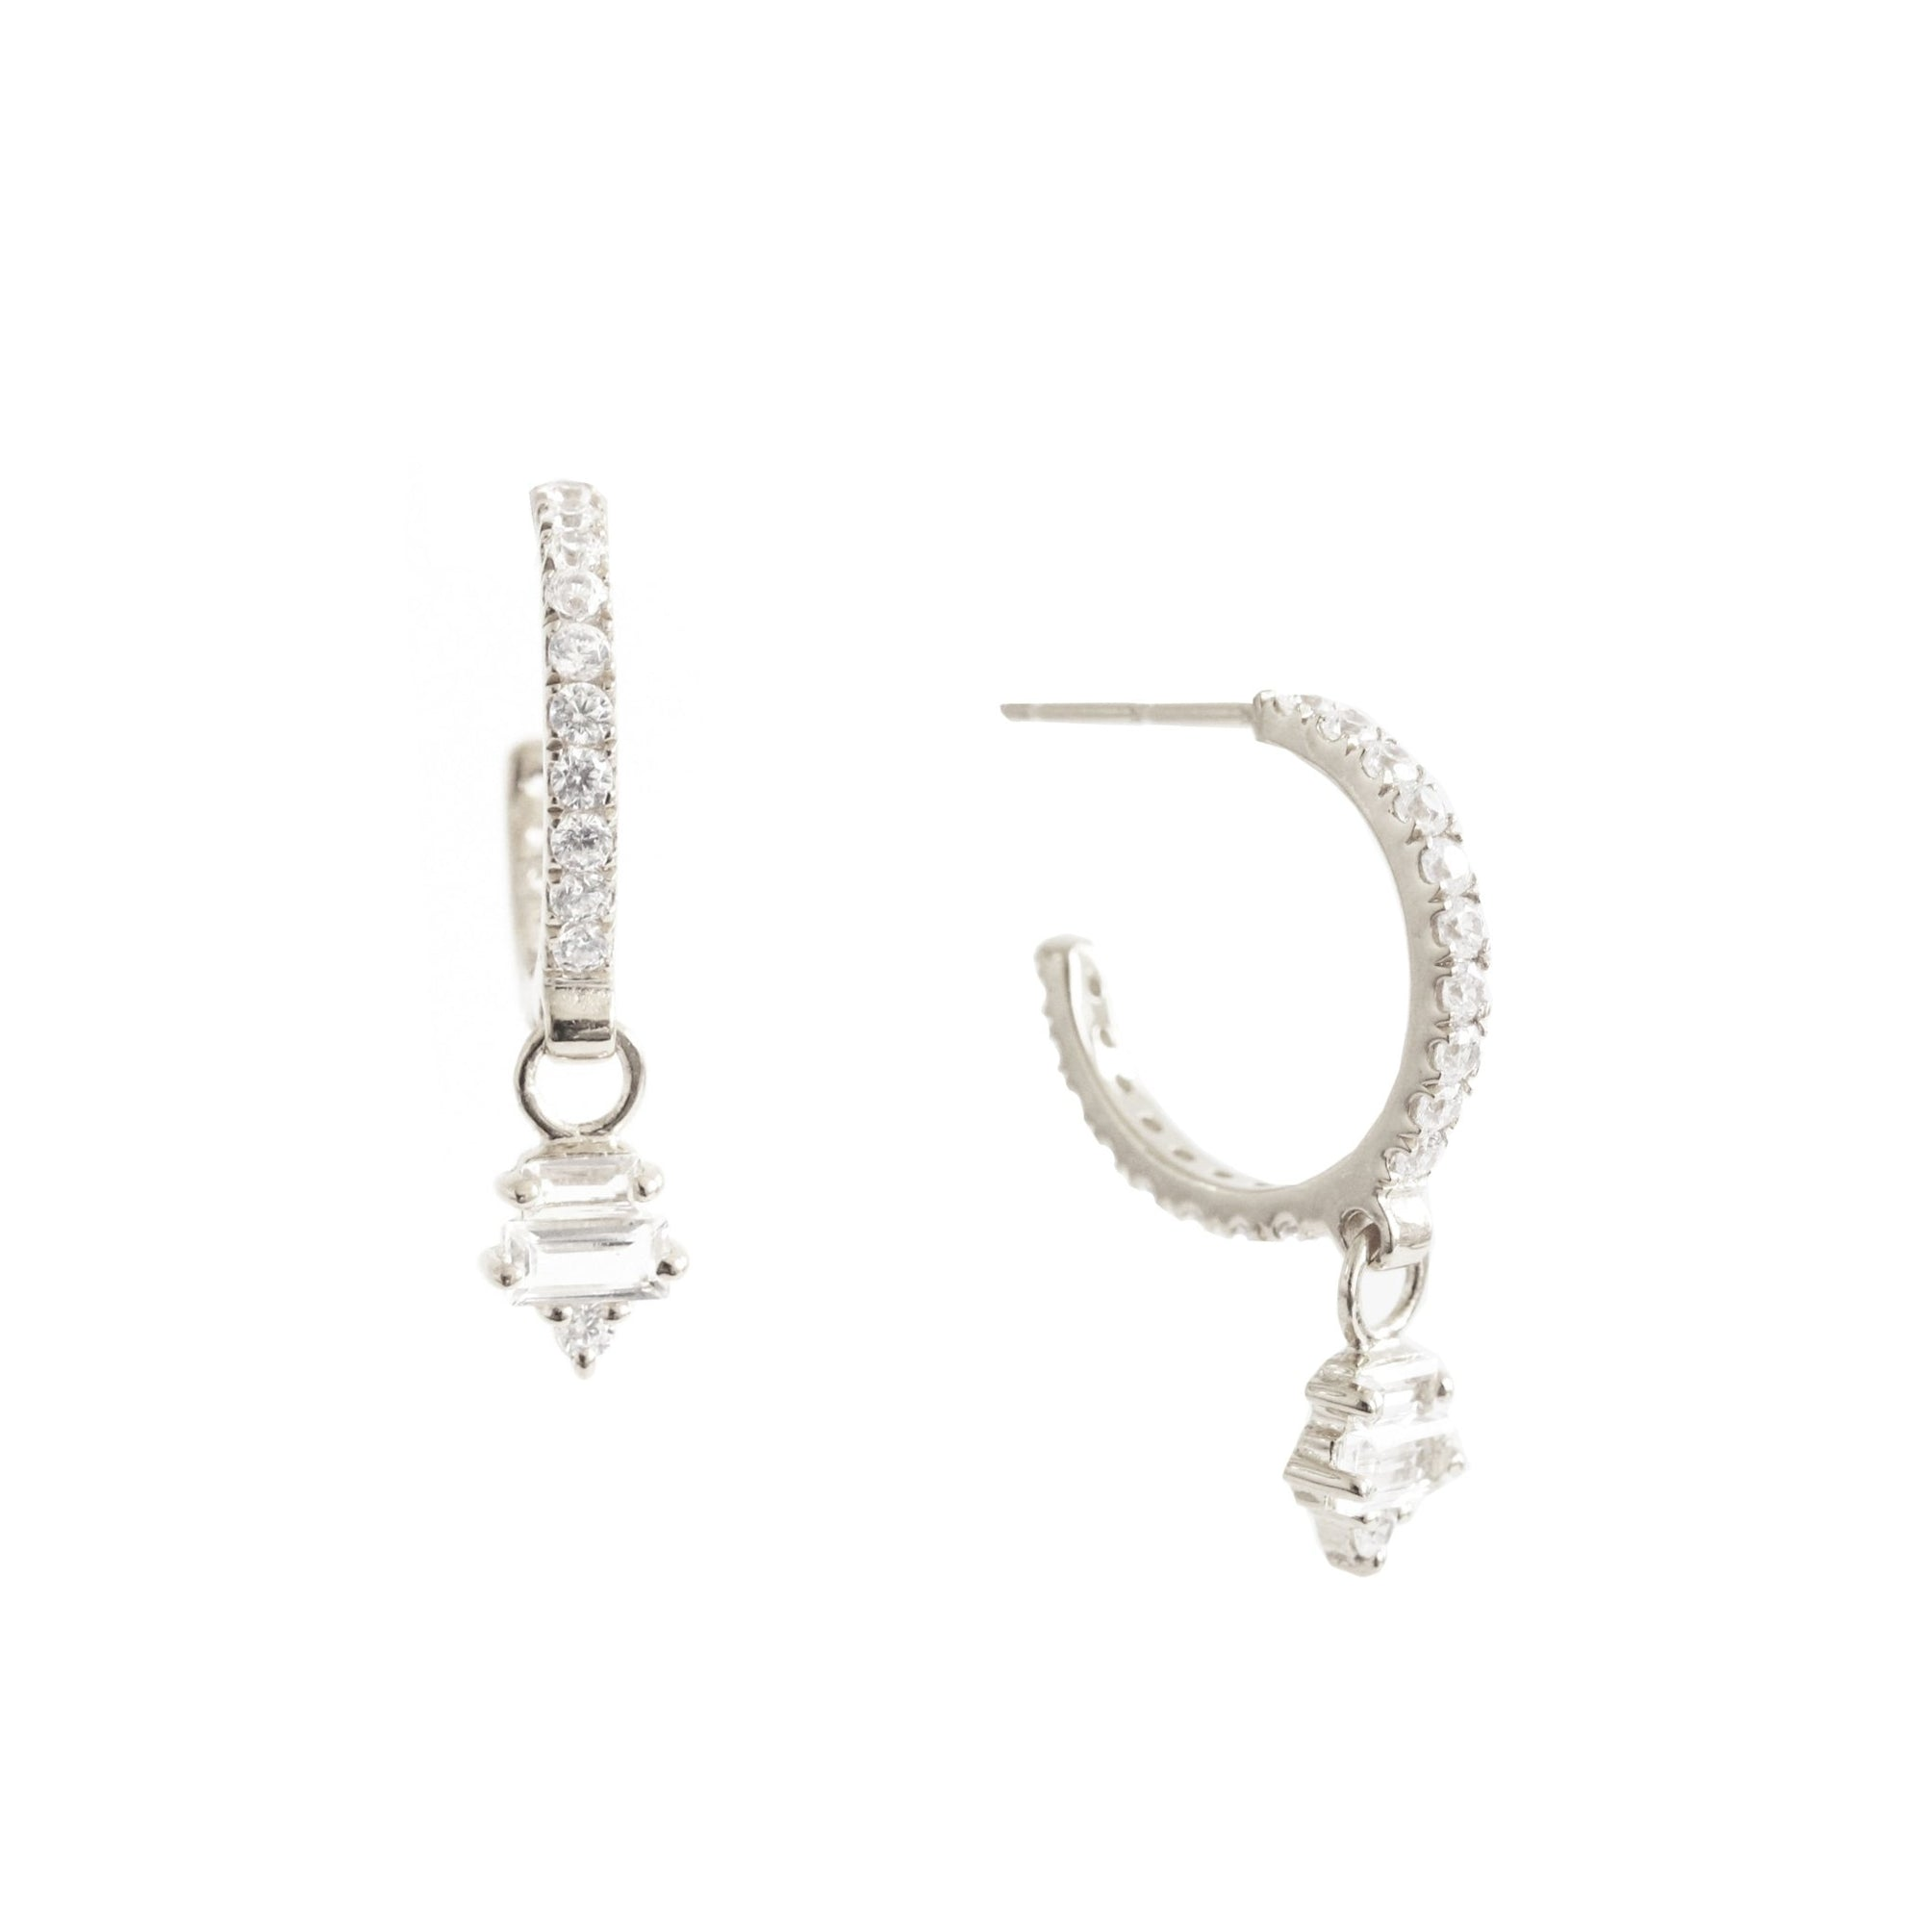 Loyal Huggie Dangle Hoops - White Topaz, Cubic Zirconia & Silver - SO PRETTY CARA COTTER